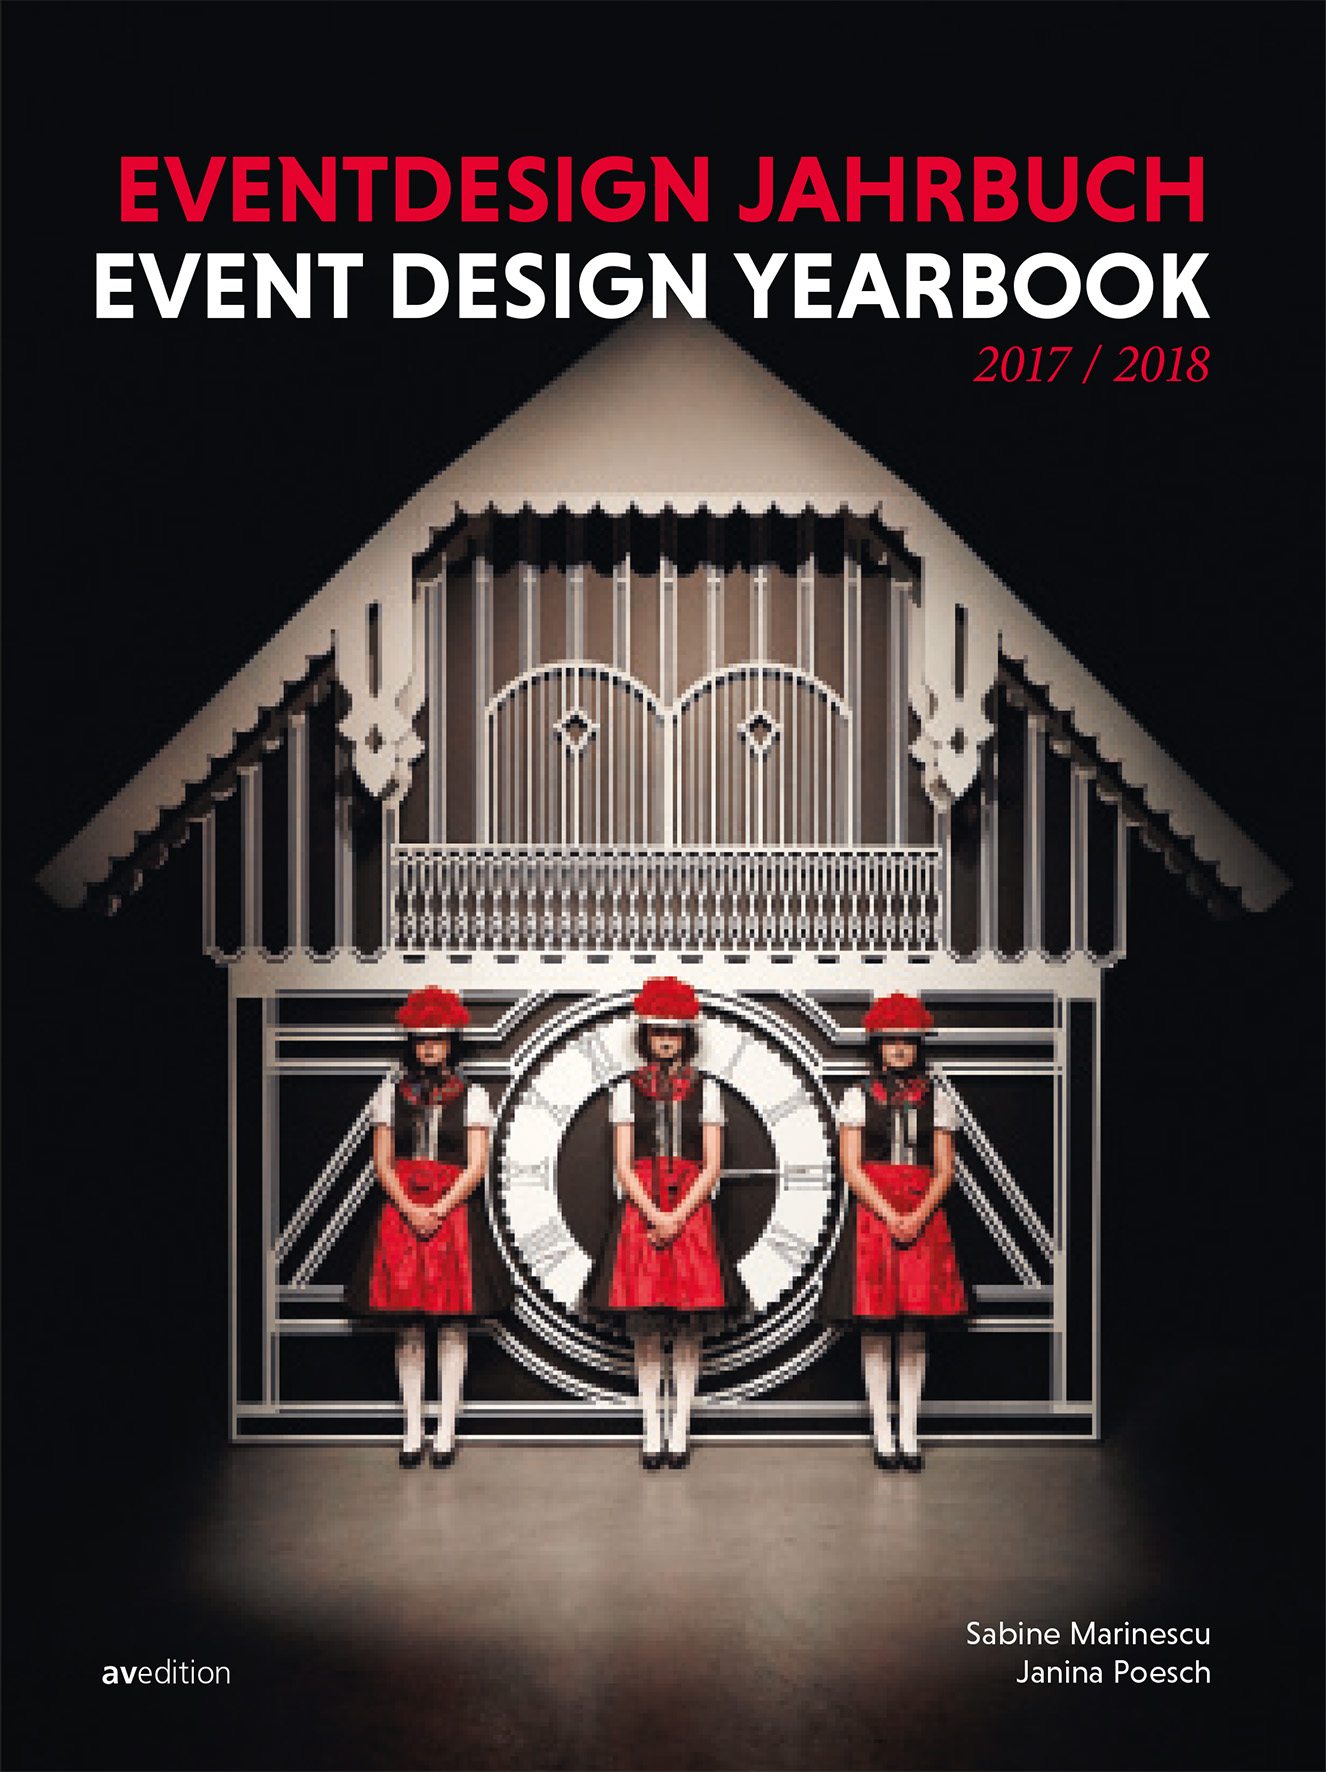 Eventdesign_Jahrbuch_Cover_2017_2018